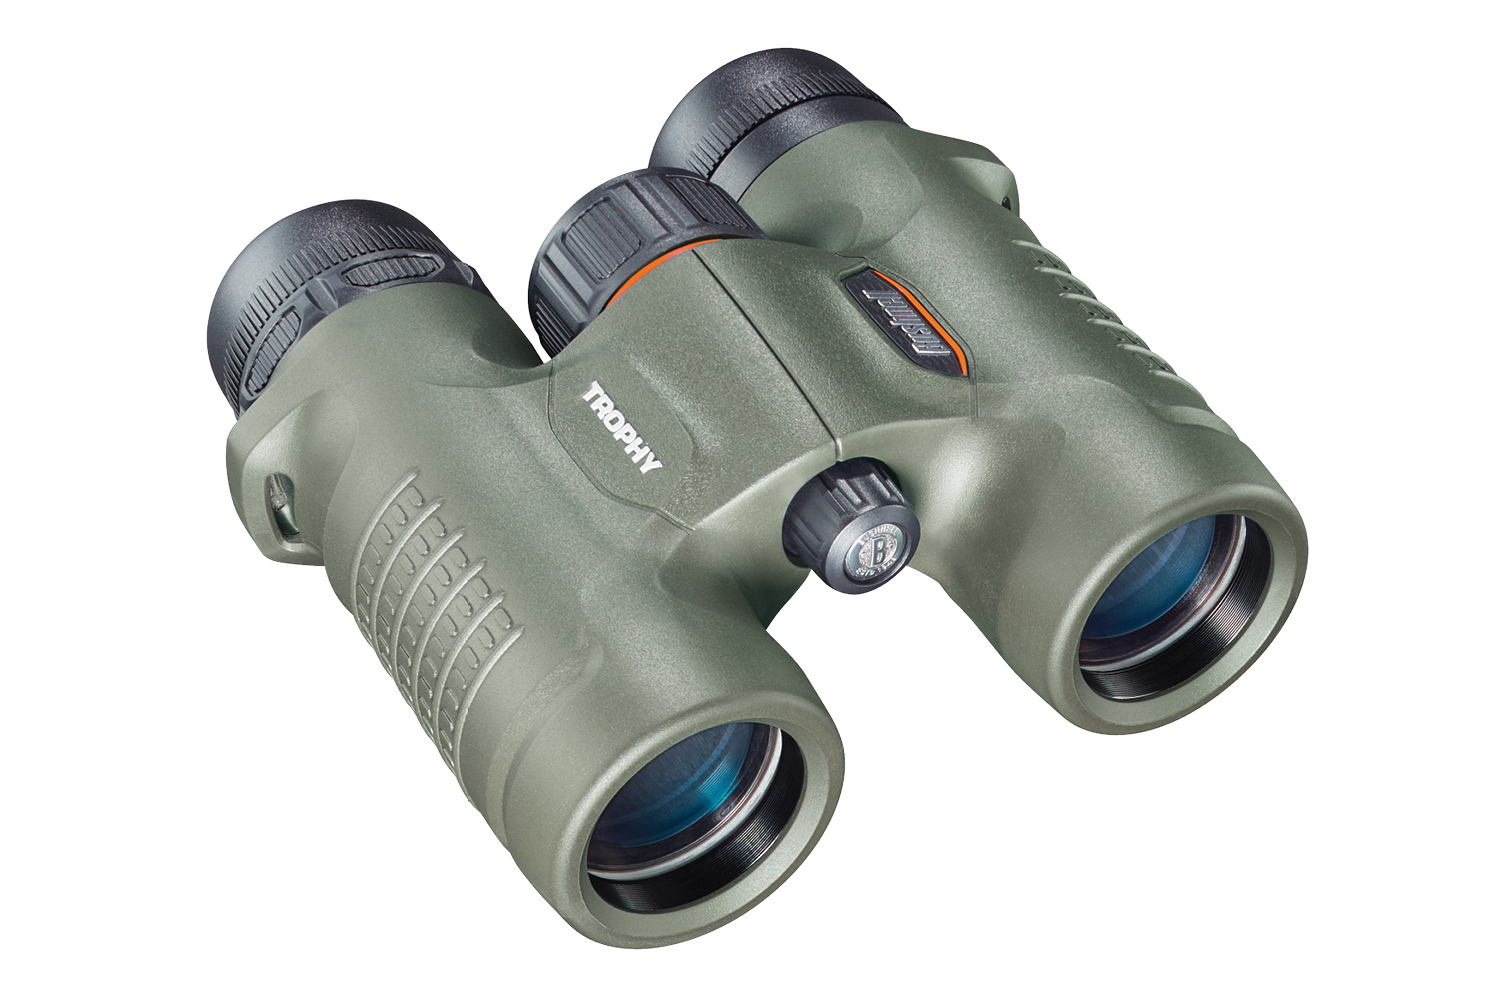 Бинокль Bushnell TROPHY 8x32 цена